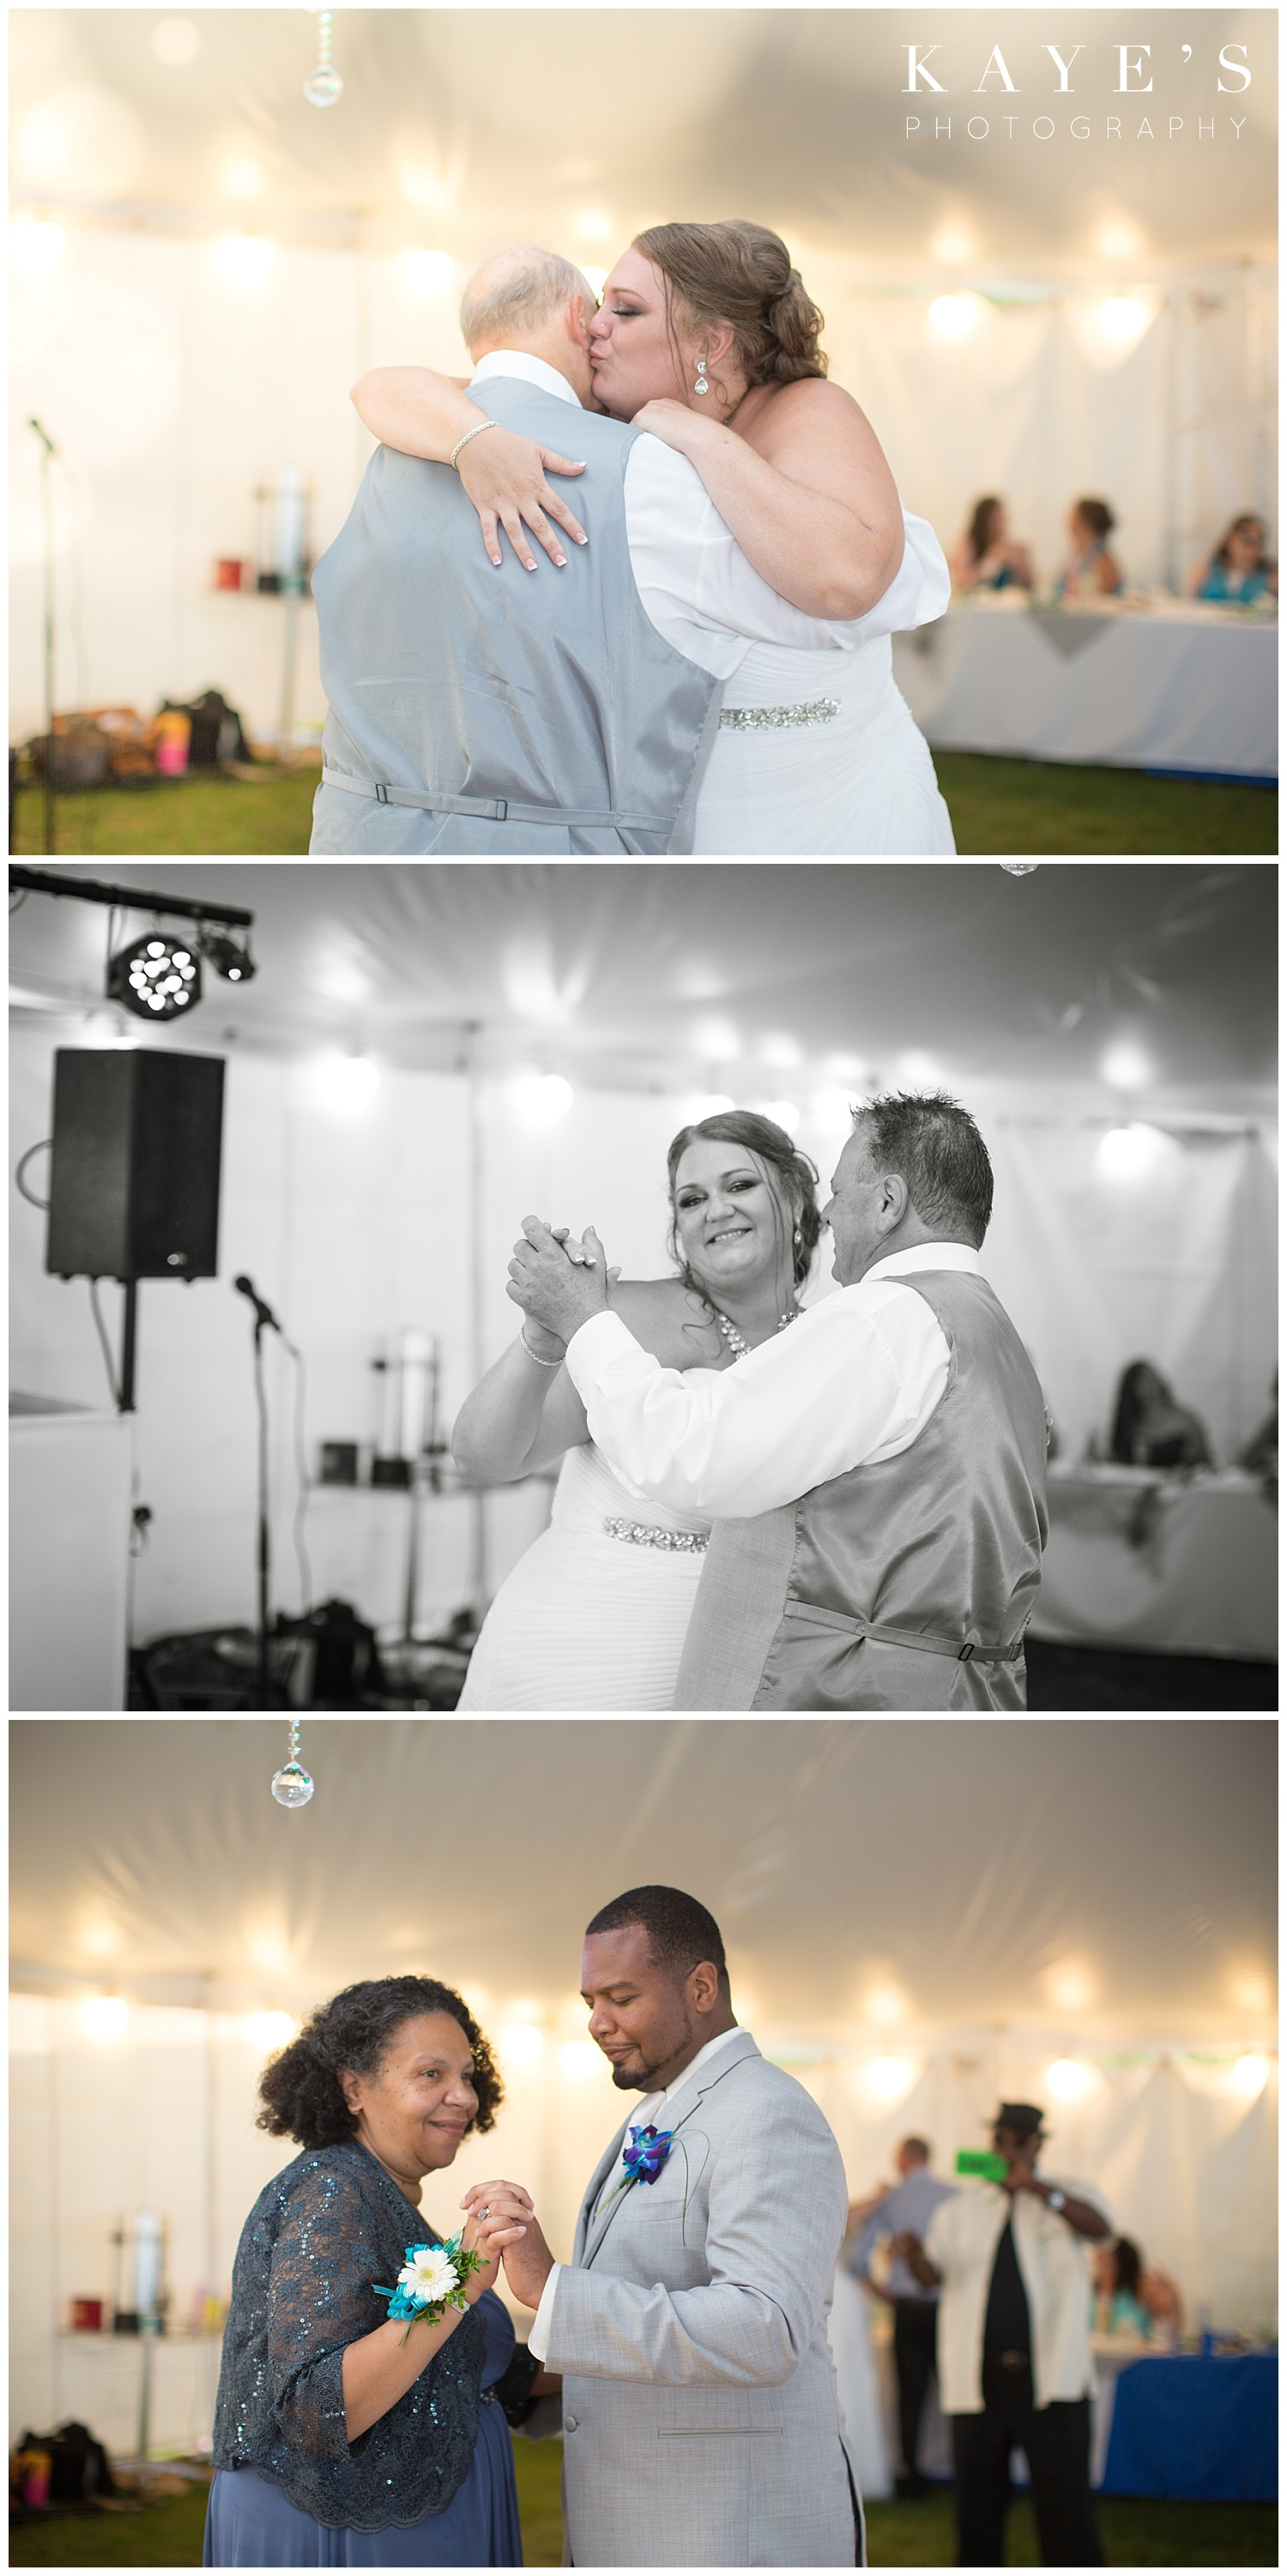 Special dances during wedding reception in tawas city Michigan